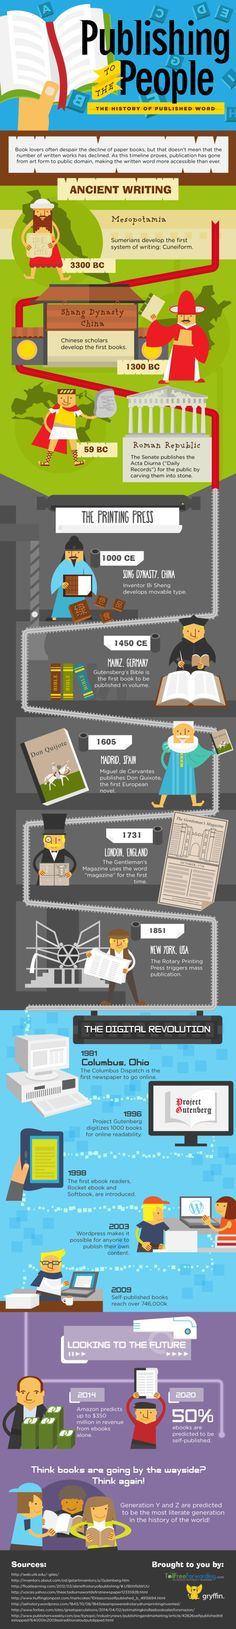 Publishing to the People: The History of Published Word  #History #Publishing #infographic #infografía